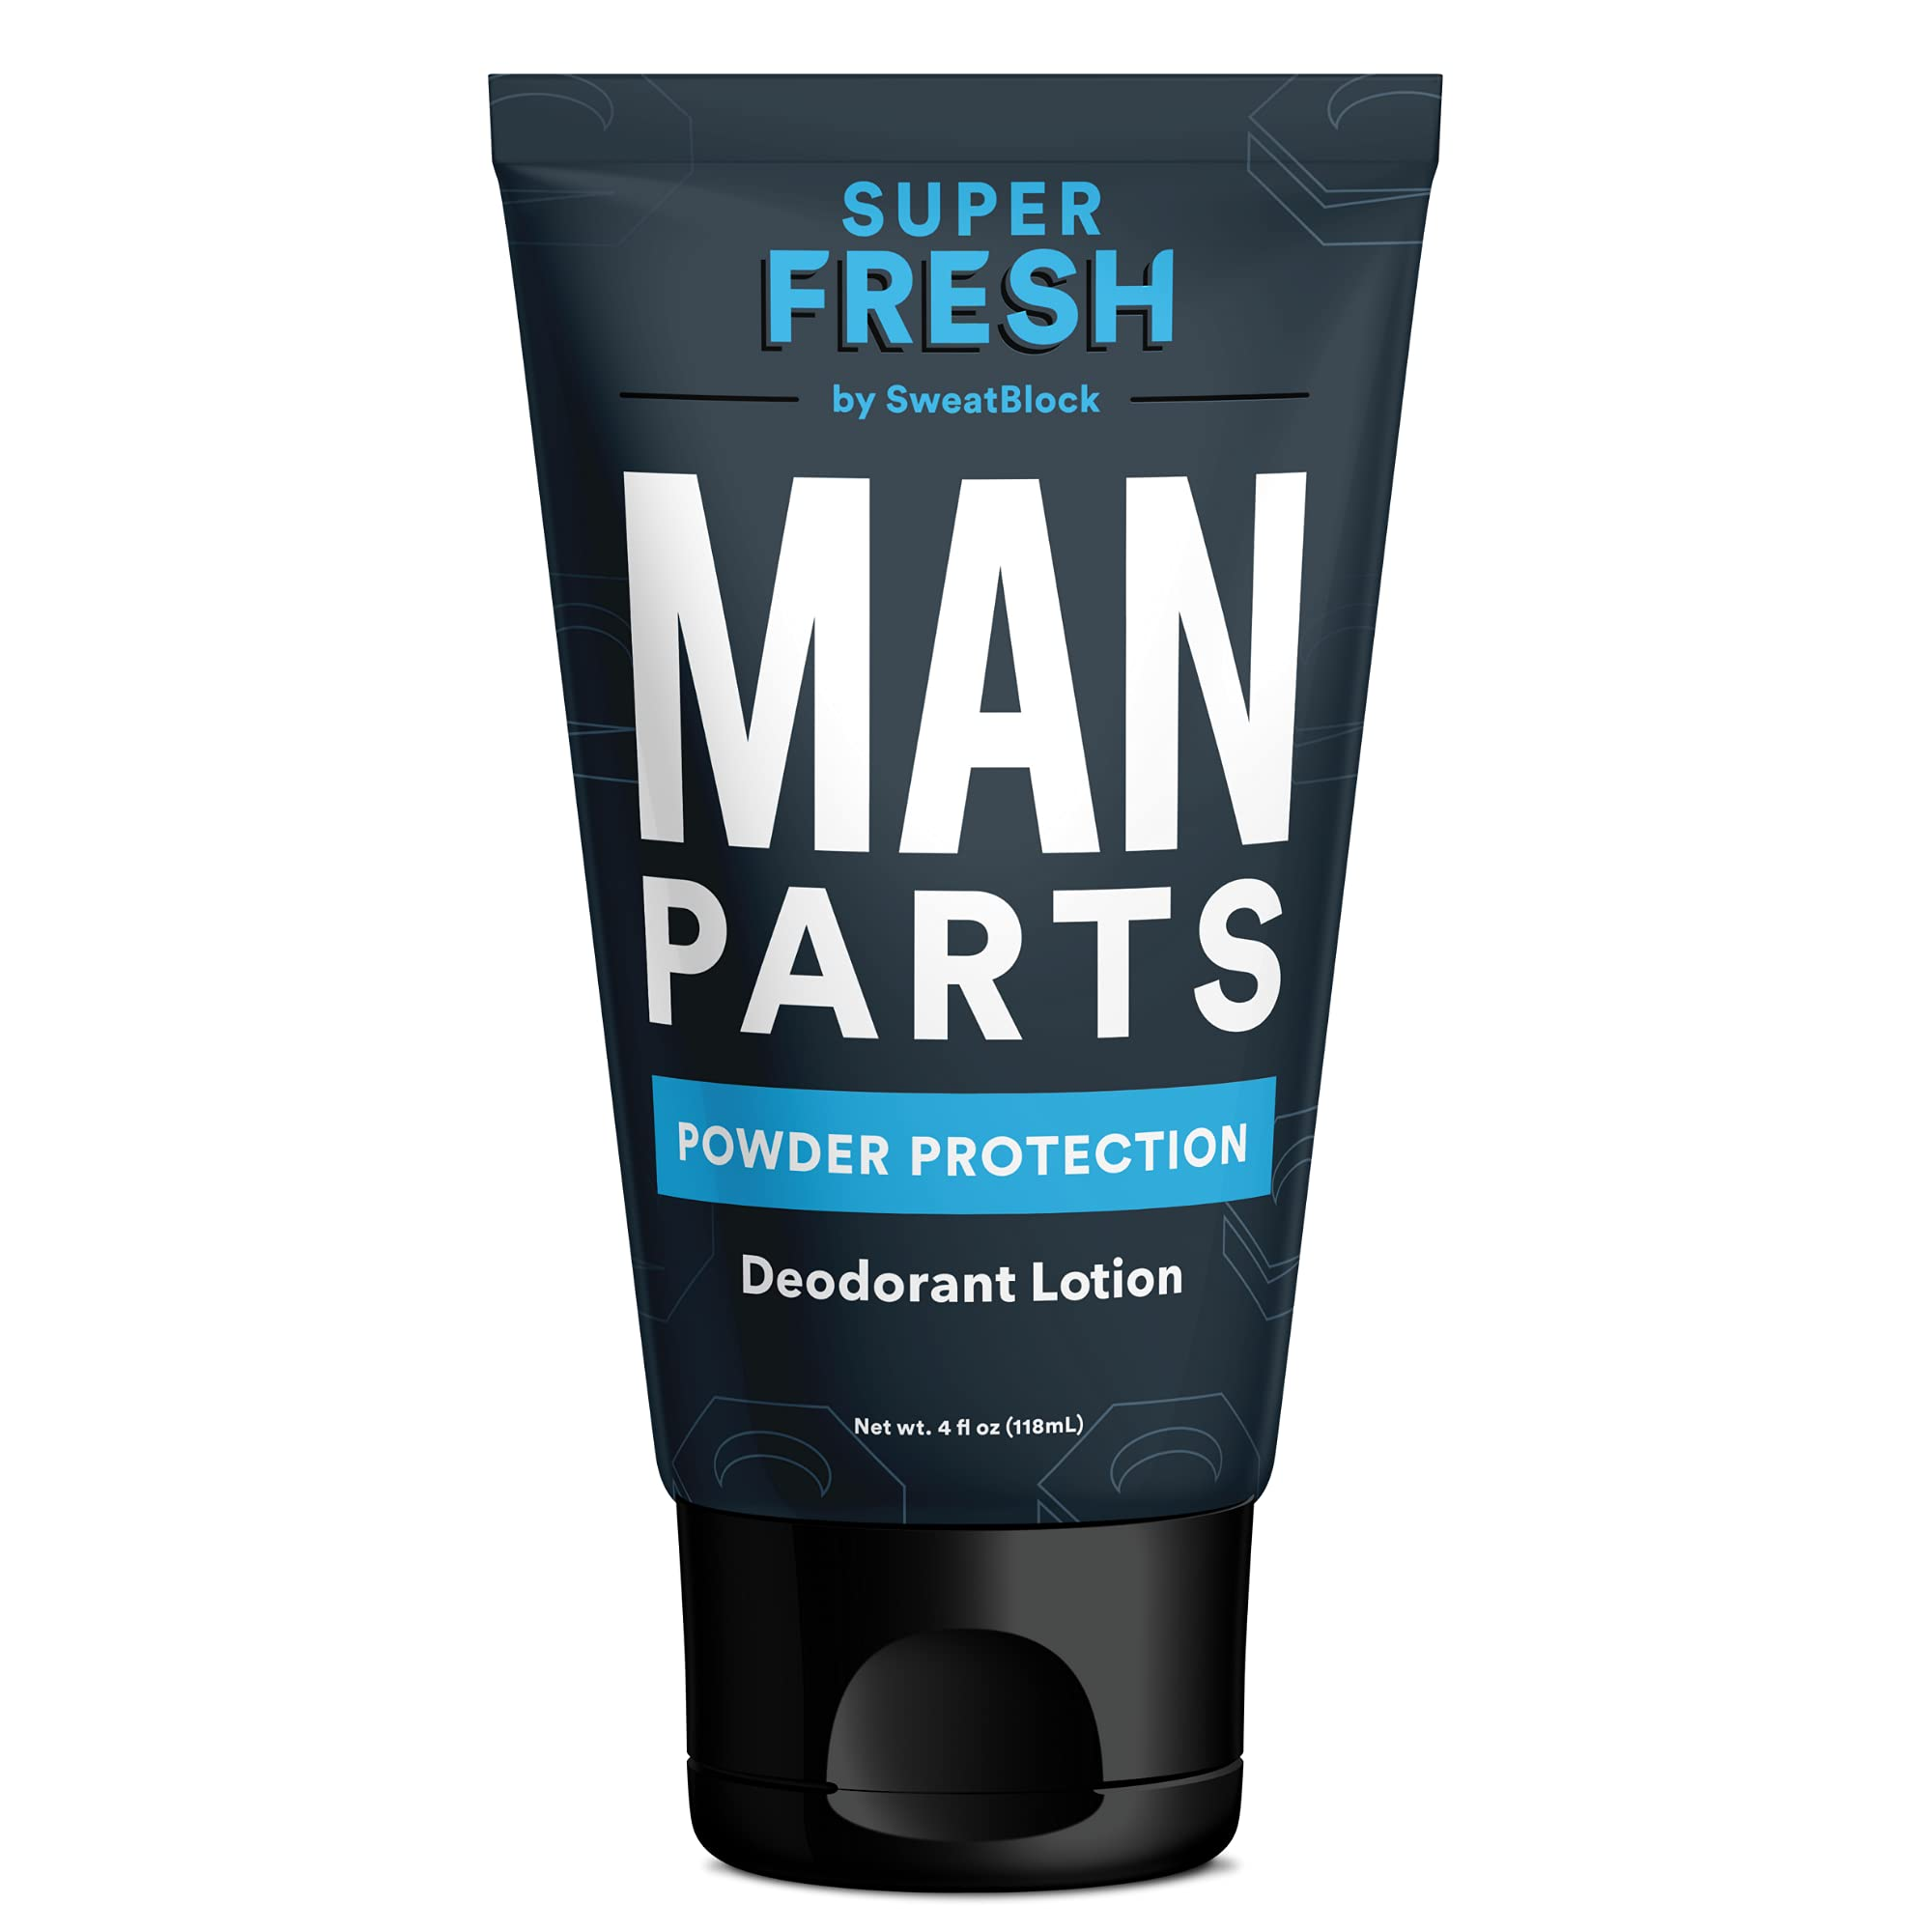 Super Fresh Ball Deodorant for Men by SweatBlock | Prevent Sweaty Man Parts & Odor | Talc-Free, Paraben-Free, Aluminum-Free | Lotion-to-Powder, No Mess, Quick-Dry Formula | 4 fl oz Tube